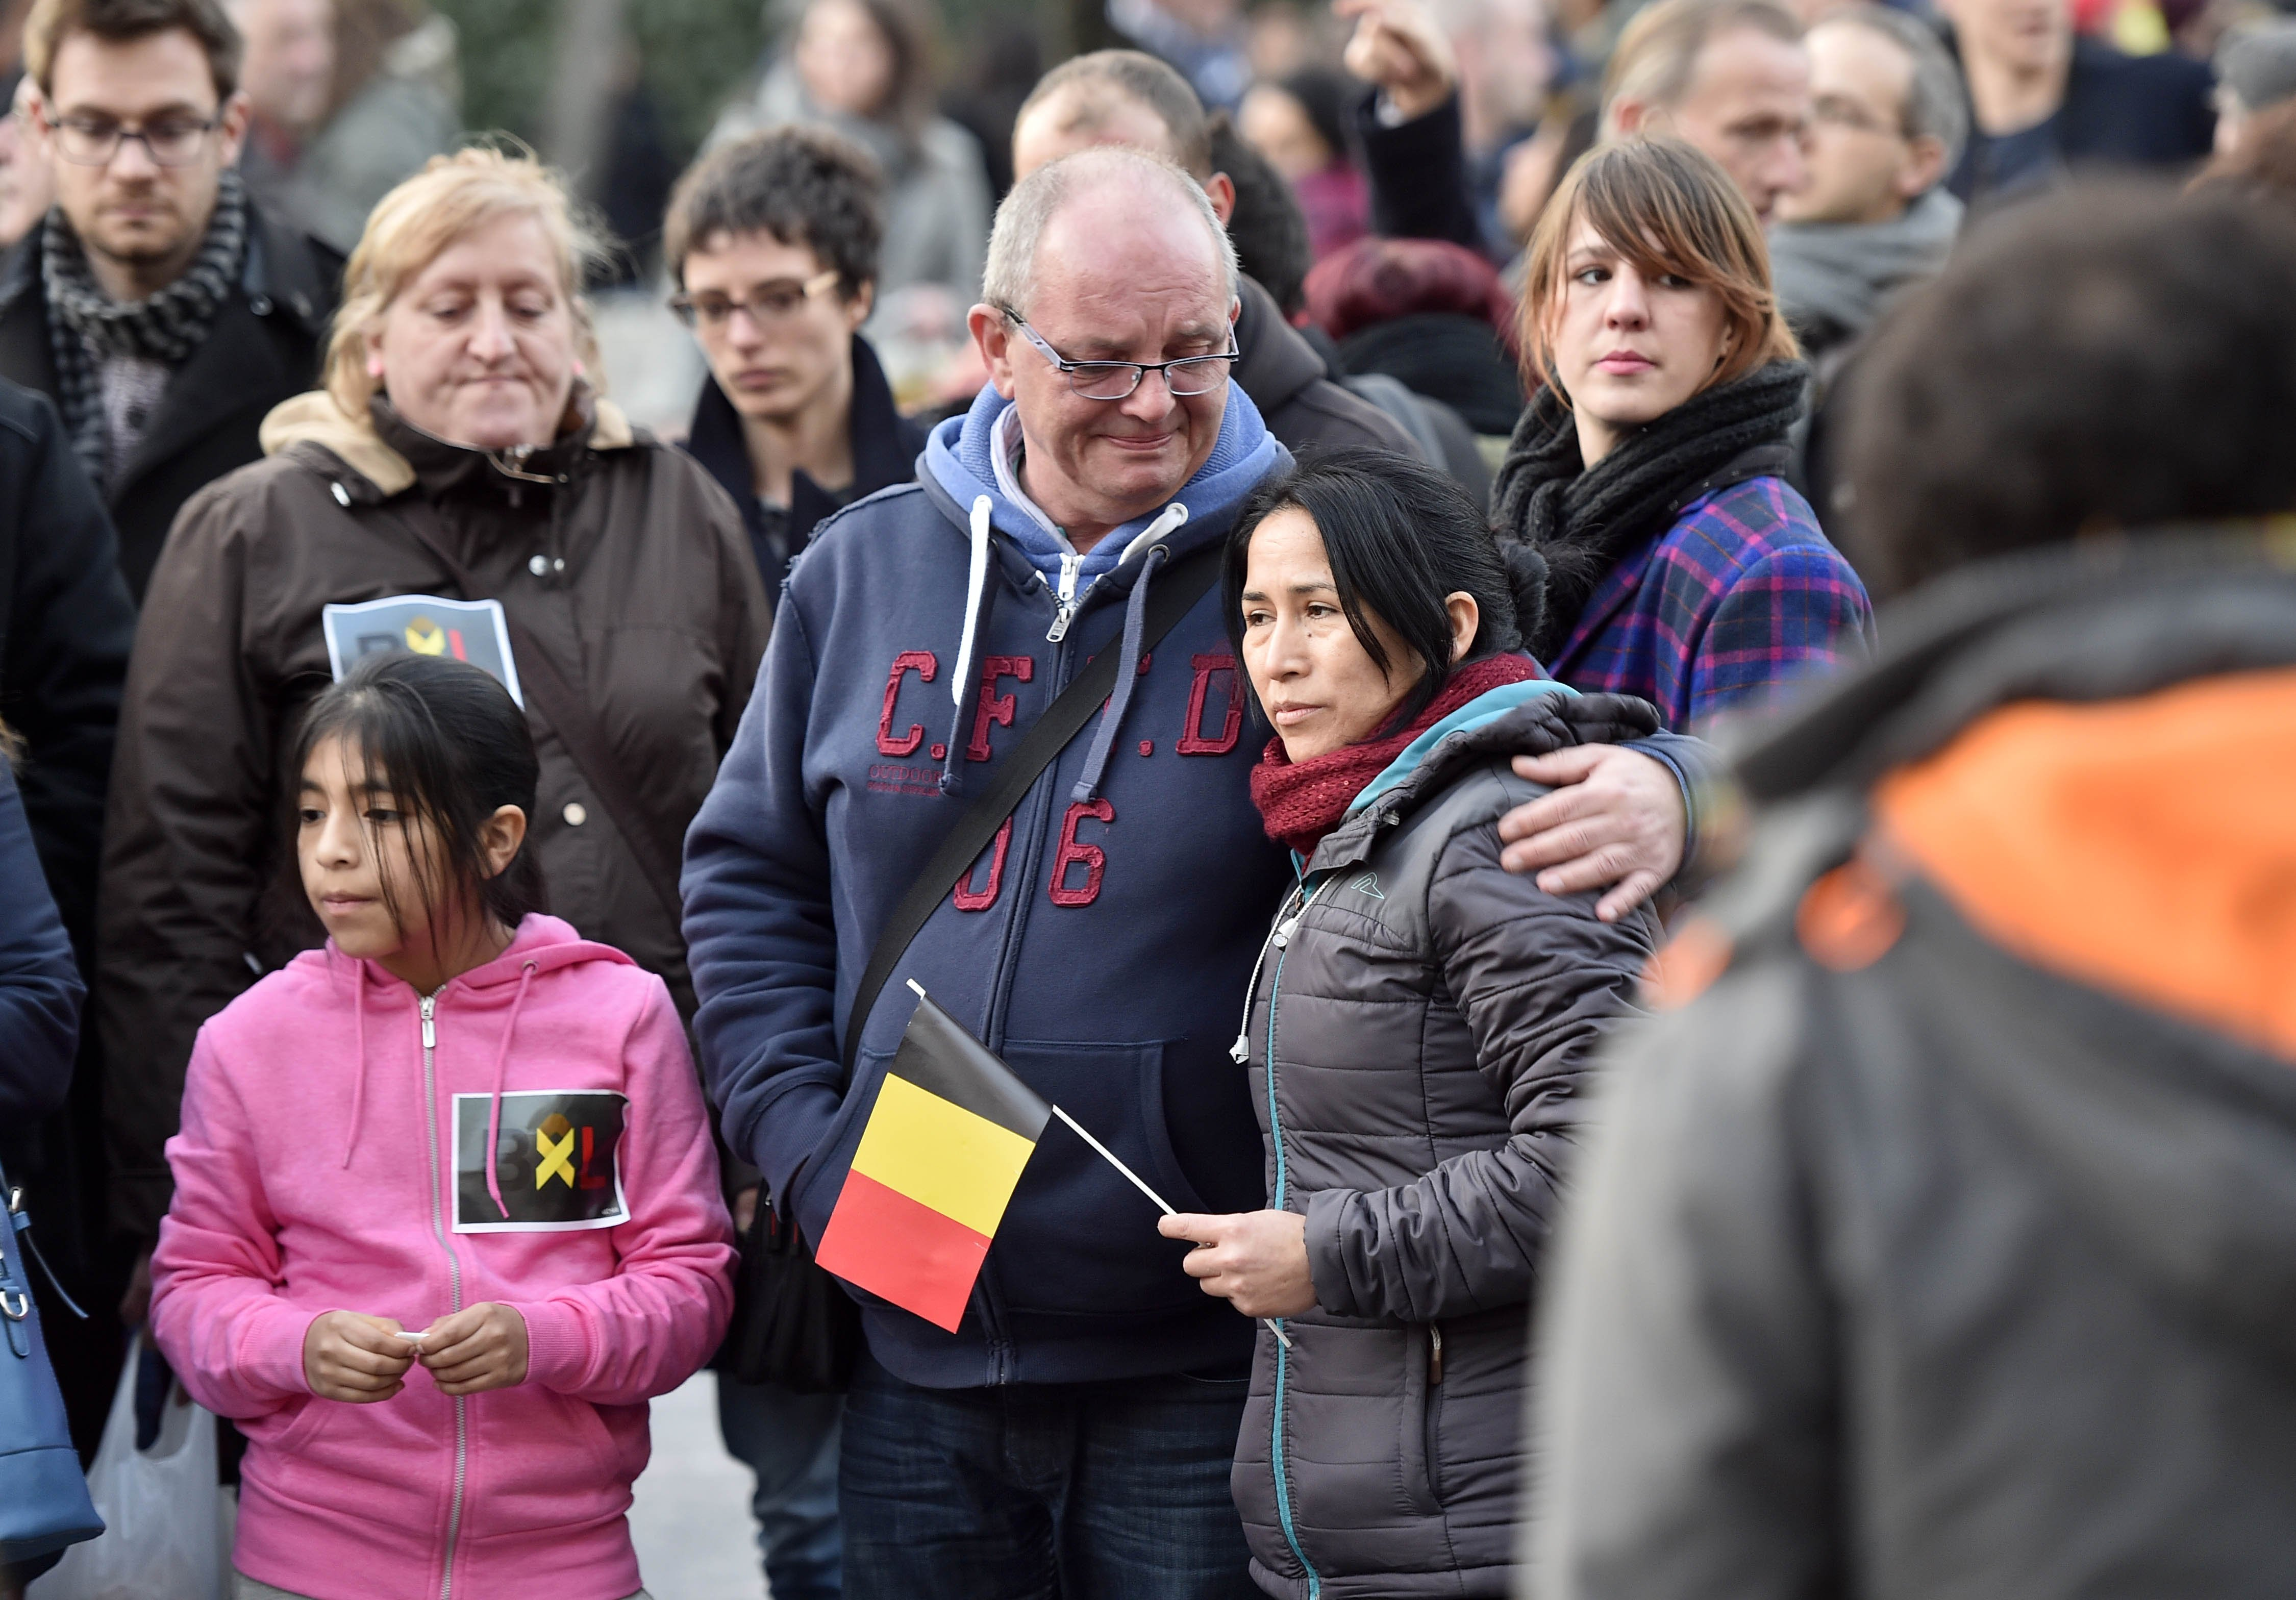 People mourn for the victims at Place de la Bourse in the center of Brussels, on March 22, 2016.